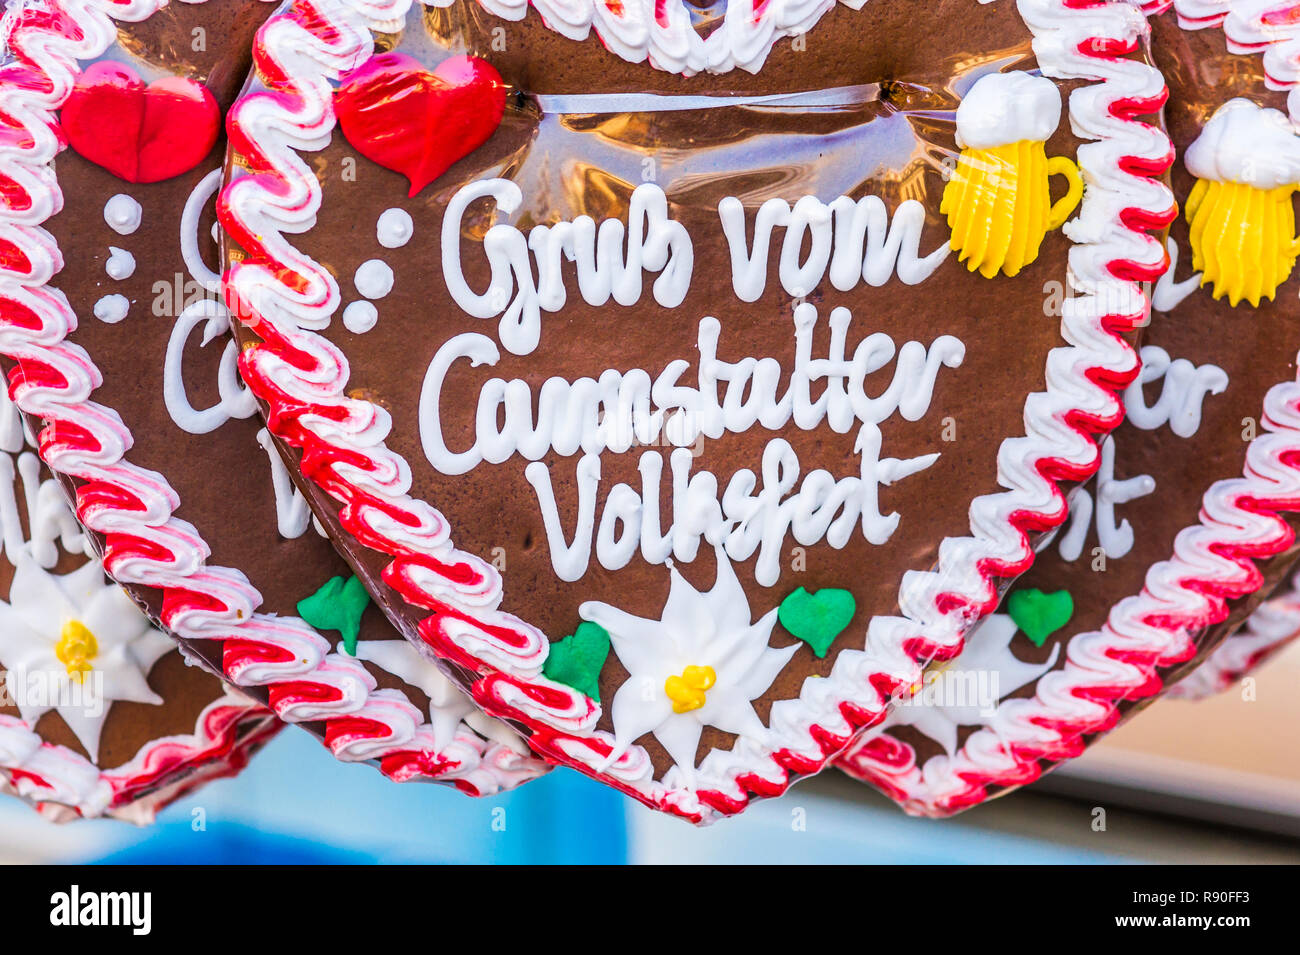 gingerbread hearts with the inscription: 'greetings from the cannstatt/stuttgart fun fair' - Stock Image